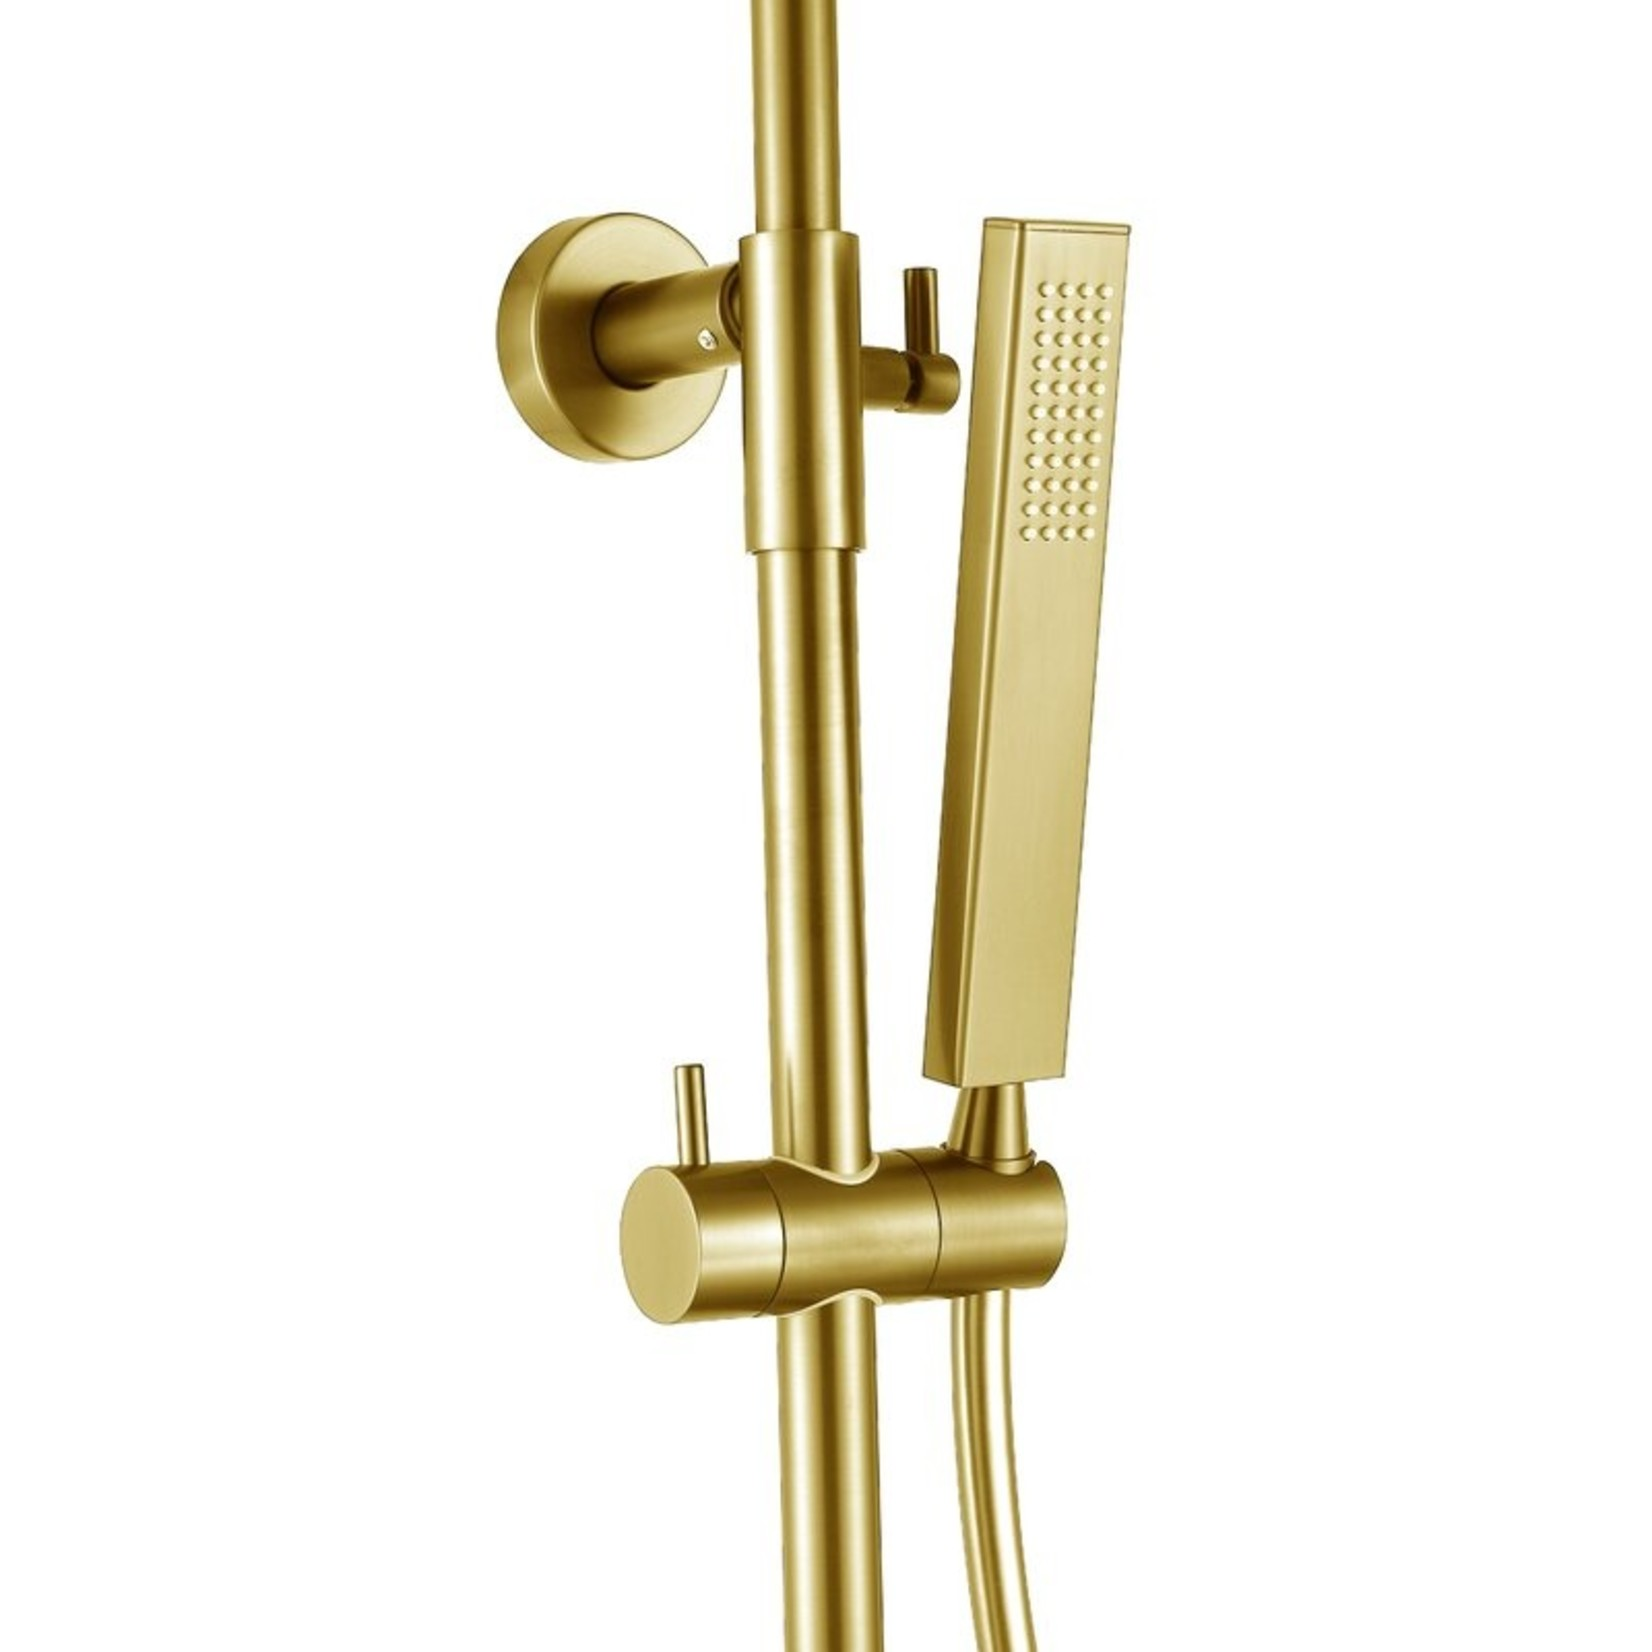 Jacki Jade Bath Thermostatic Shower Column Gold